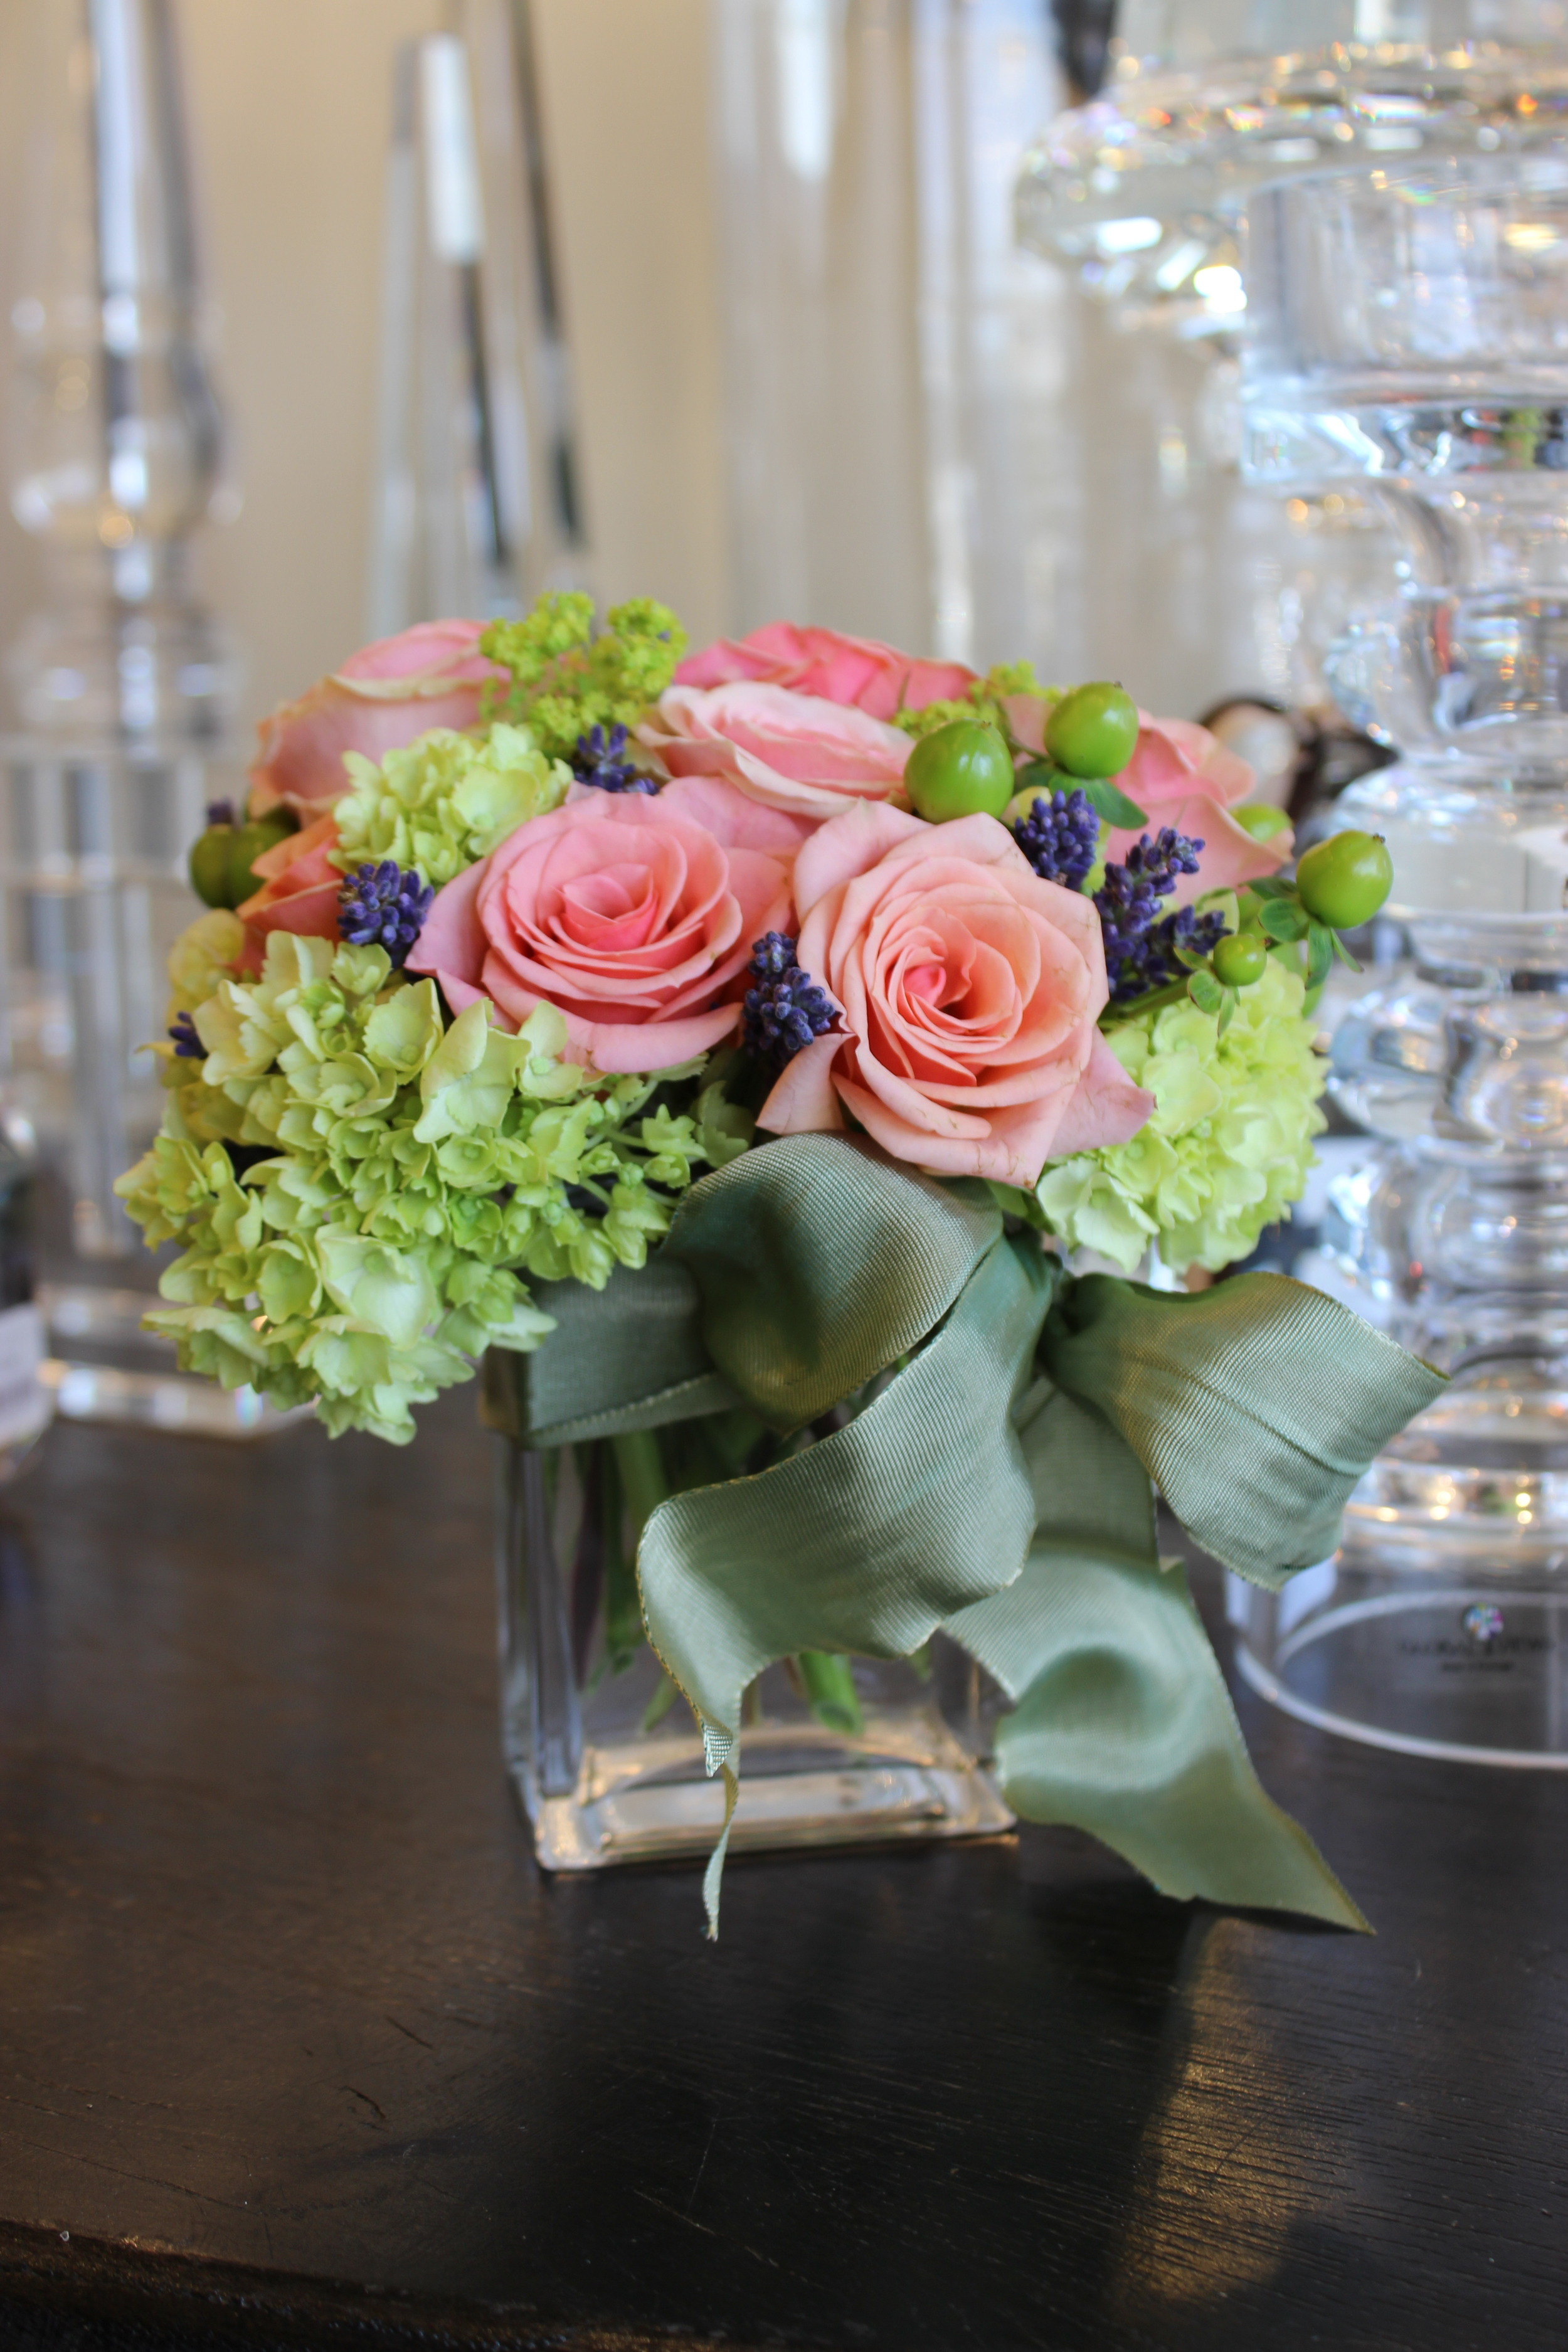 Nosegay of Roses, Hydrangea. From $35.00